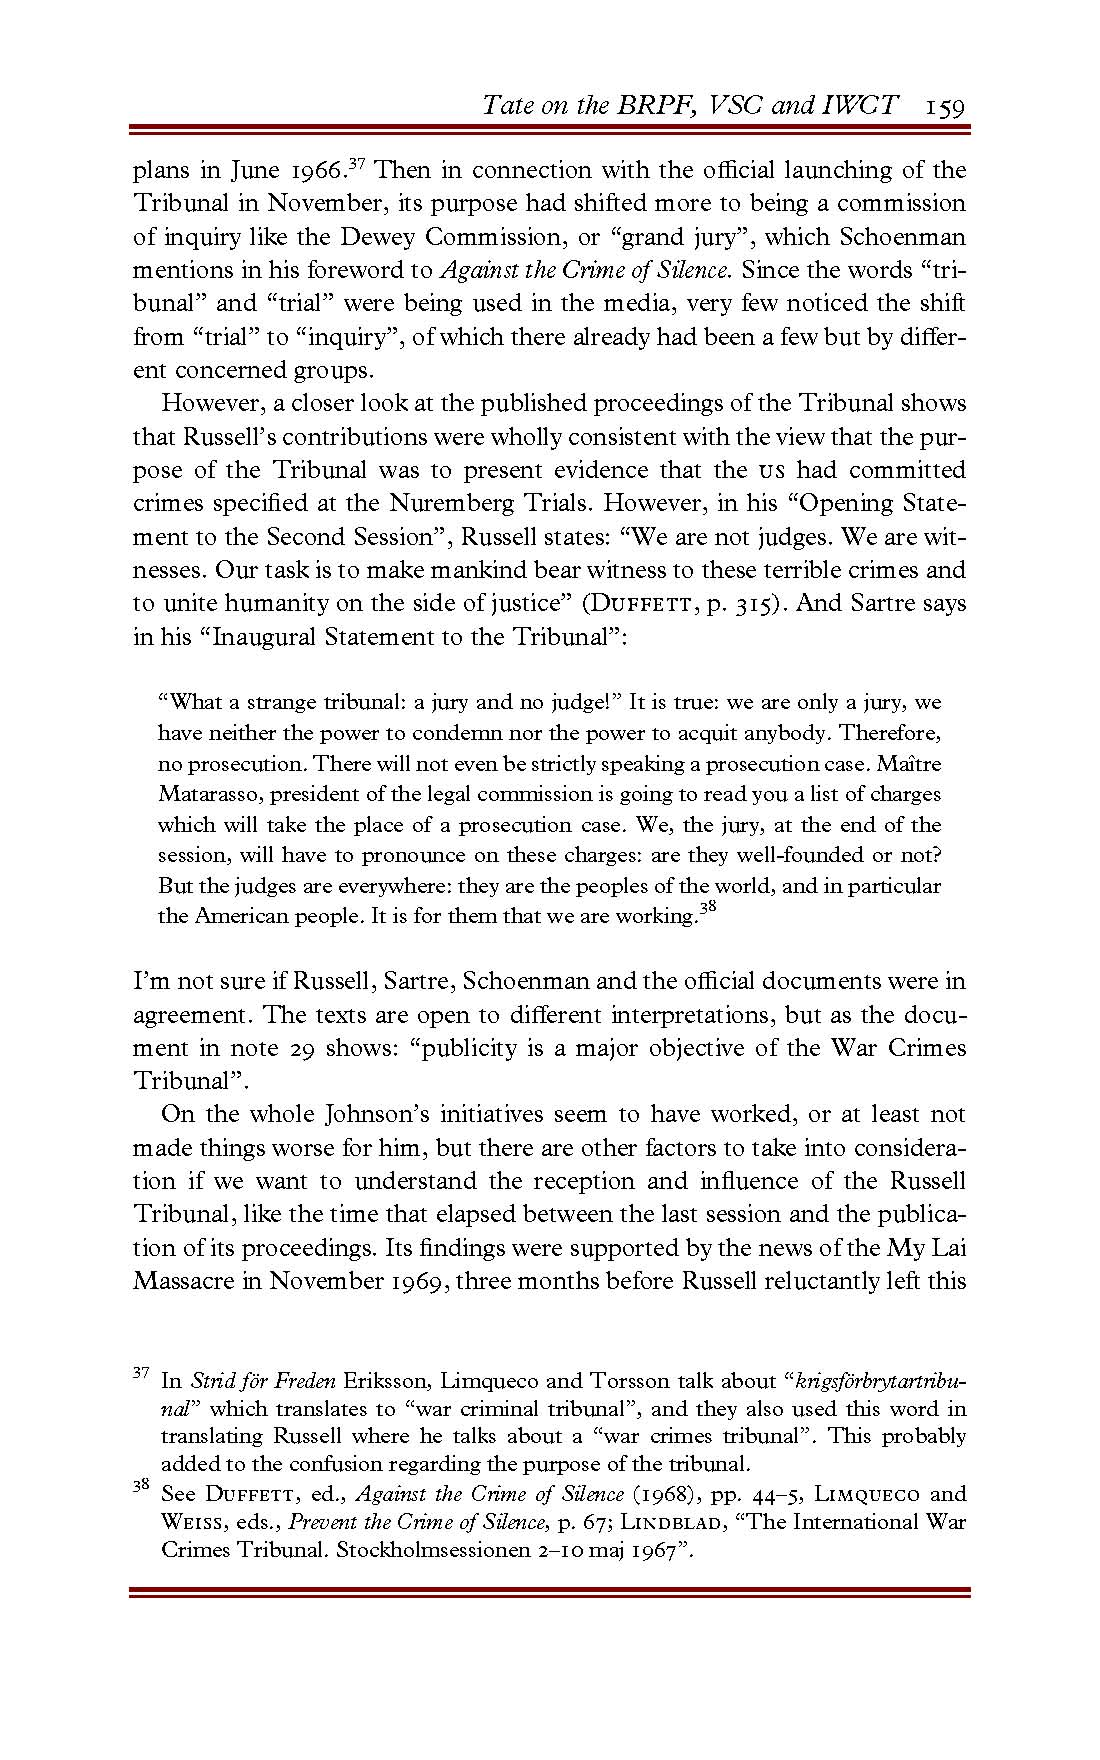 Anderson-- Pages from RJ 3402 050 red-5 (2)-1_Page_25